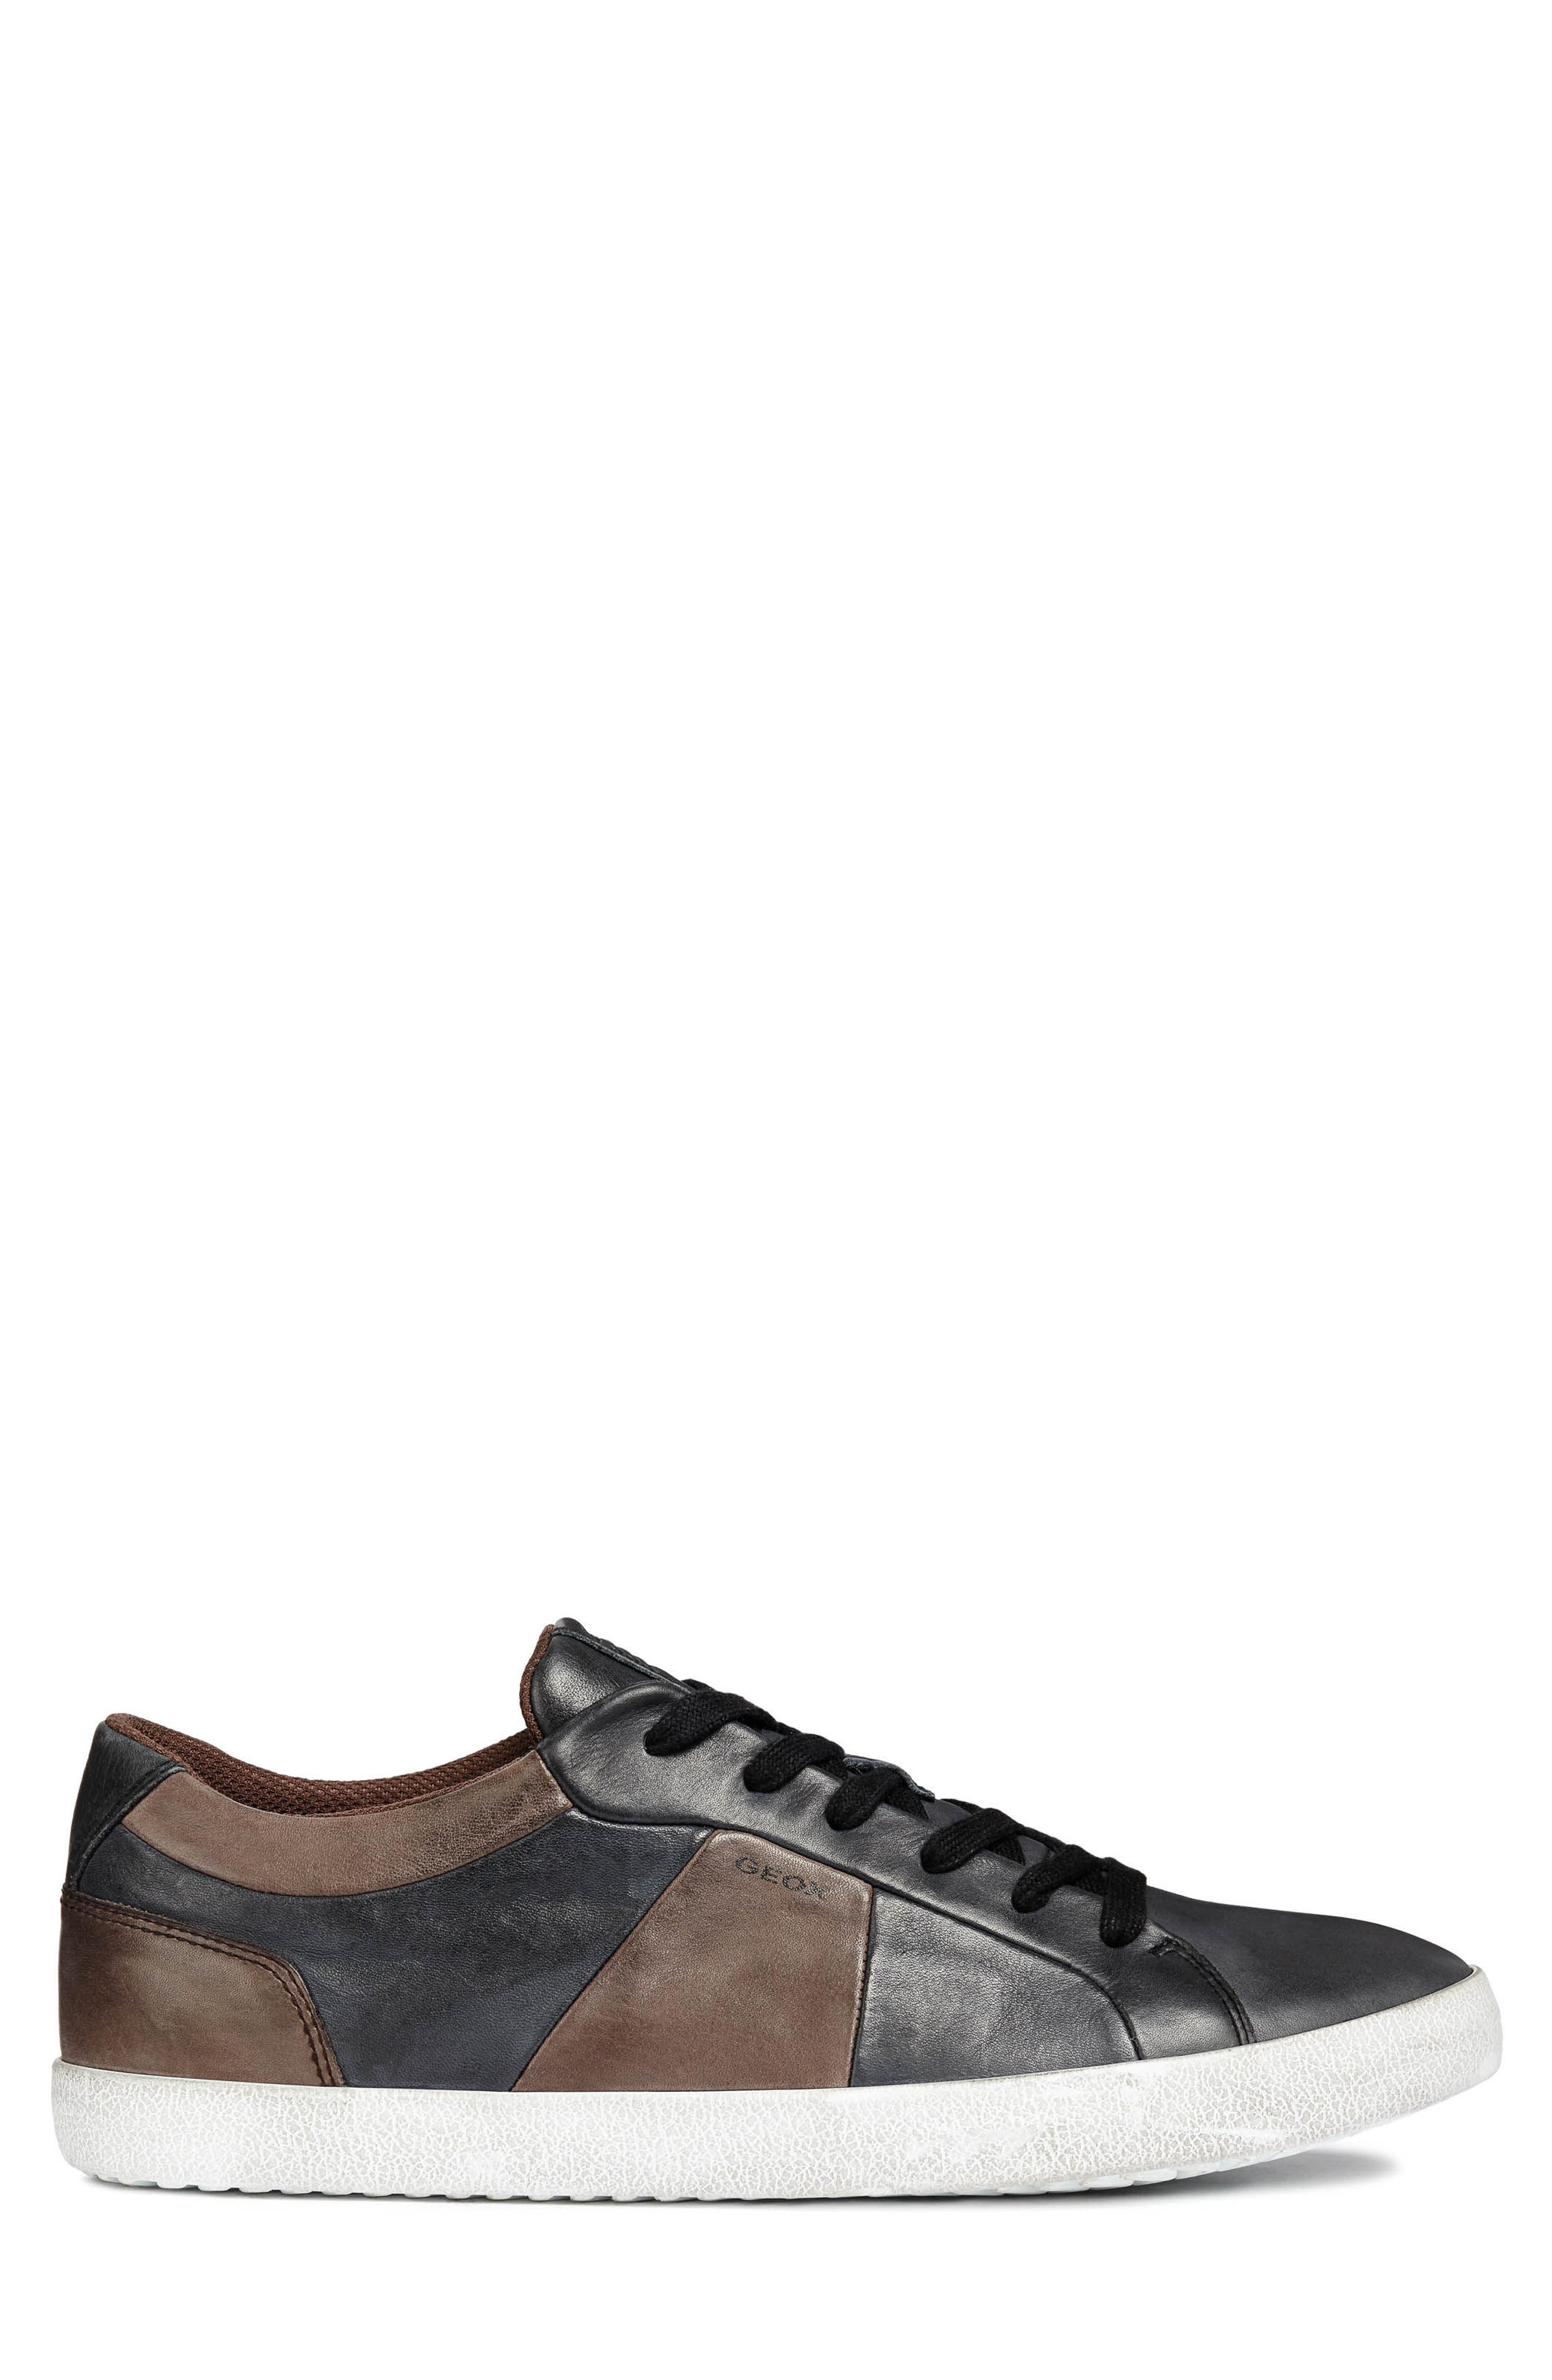 Smart 85 Low Top Sneaker,                             Alternate thumbnail 3, color,                             BLACK/ COFFEE LEATHER